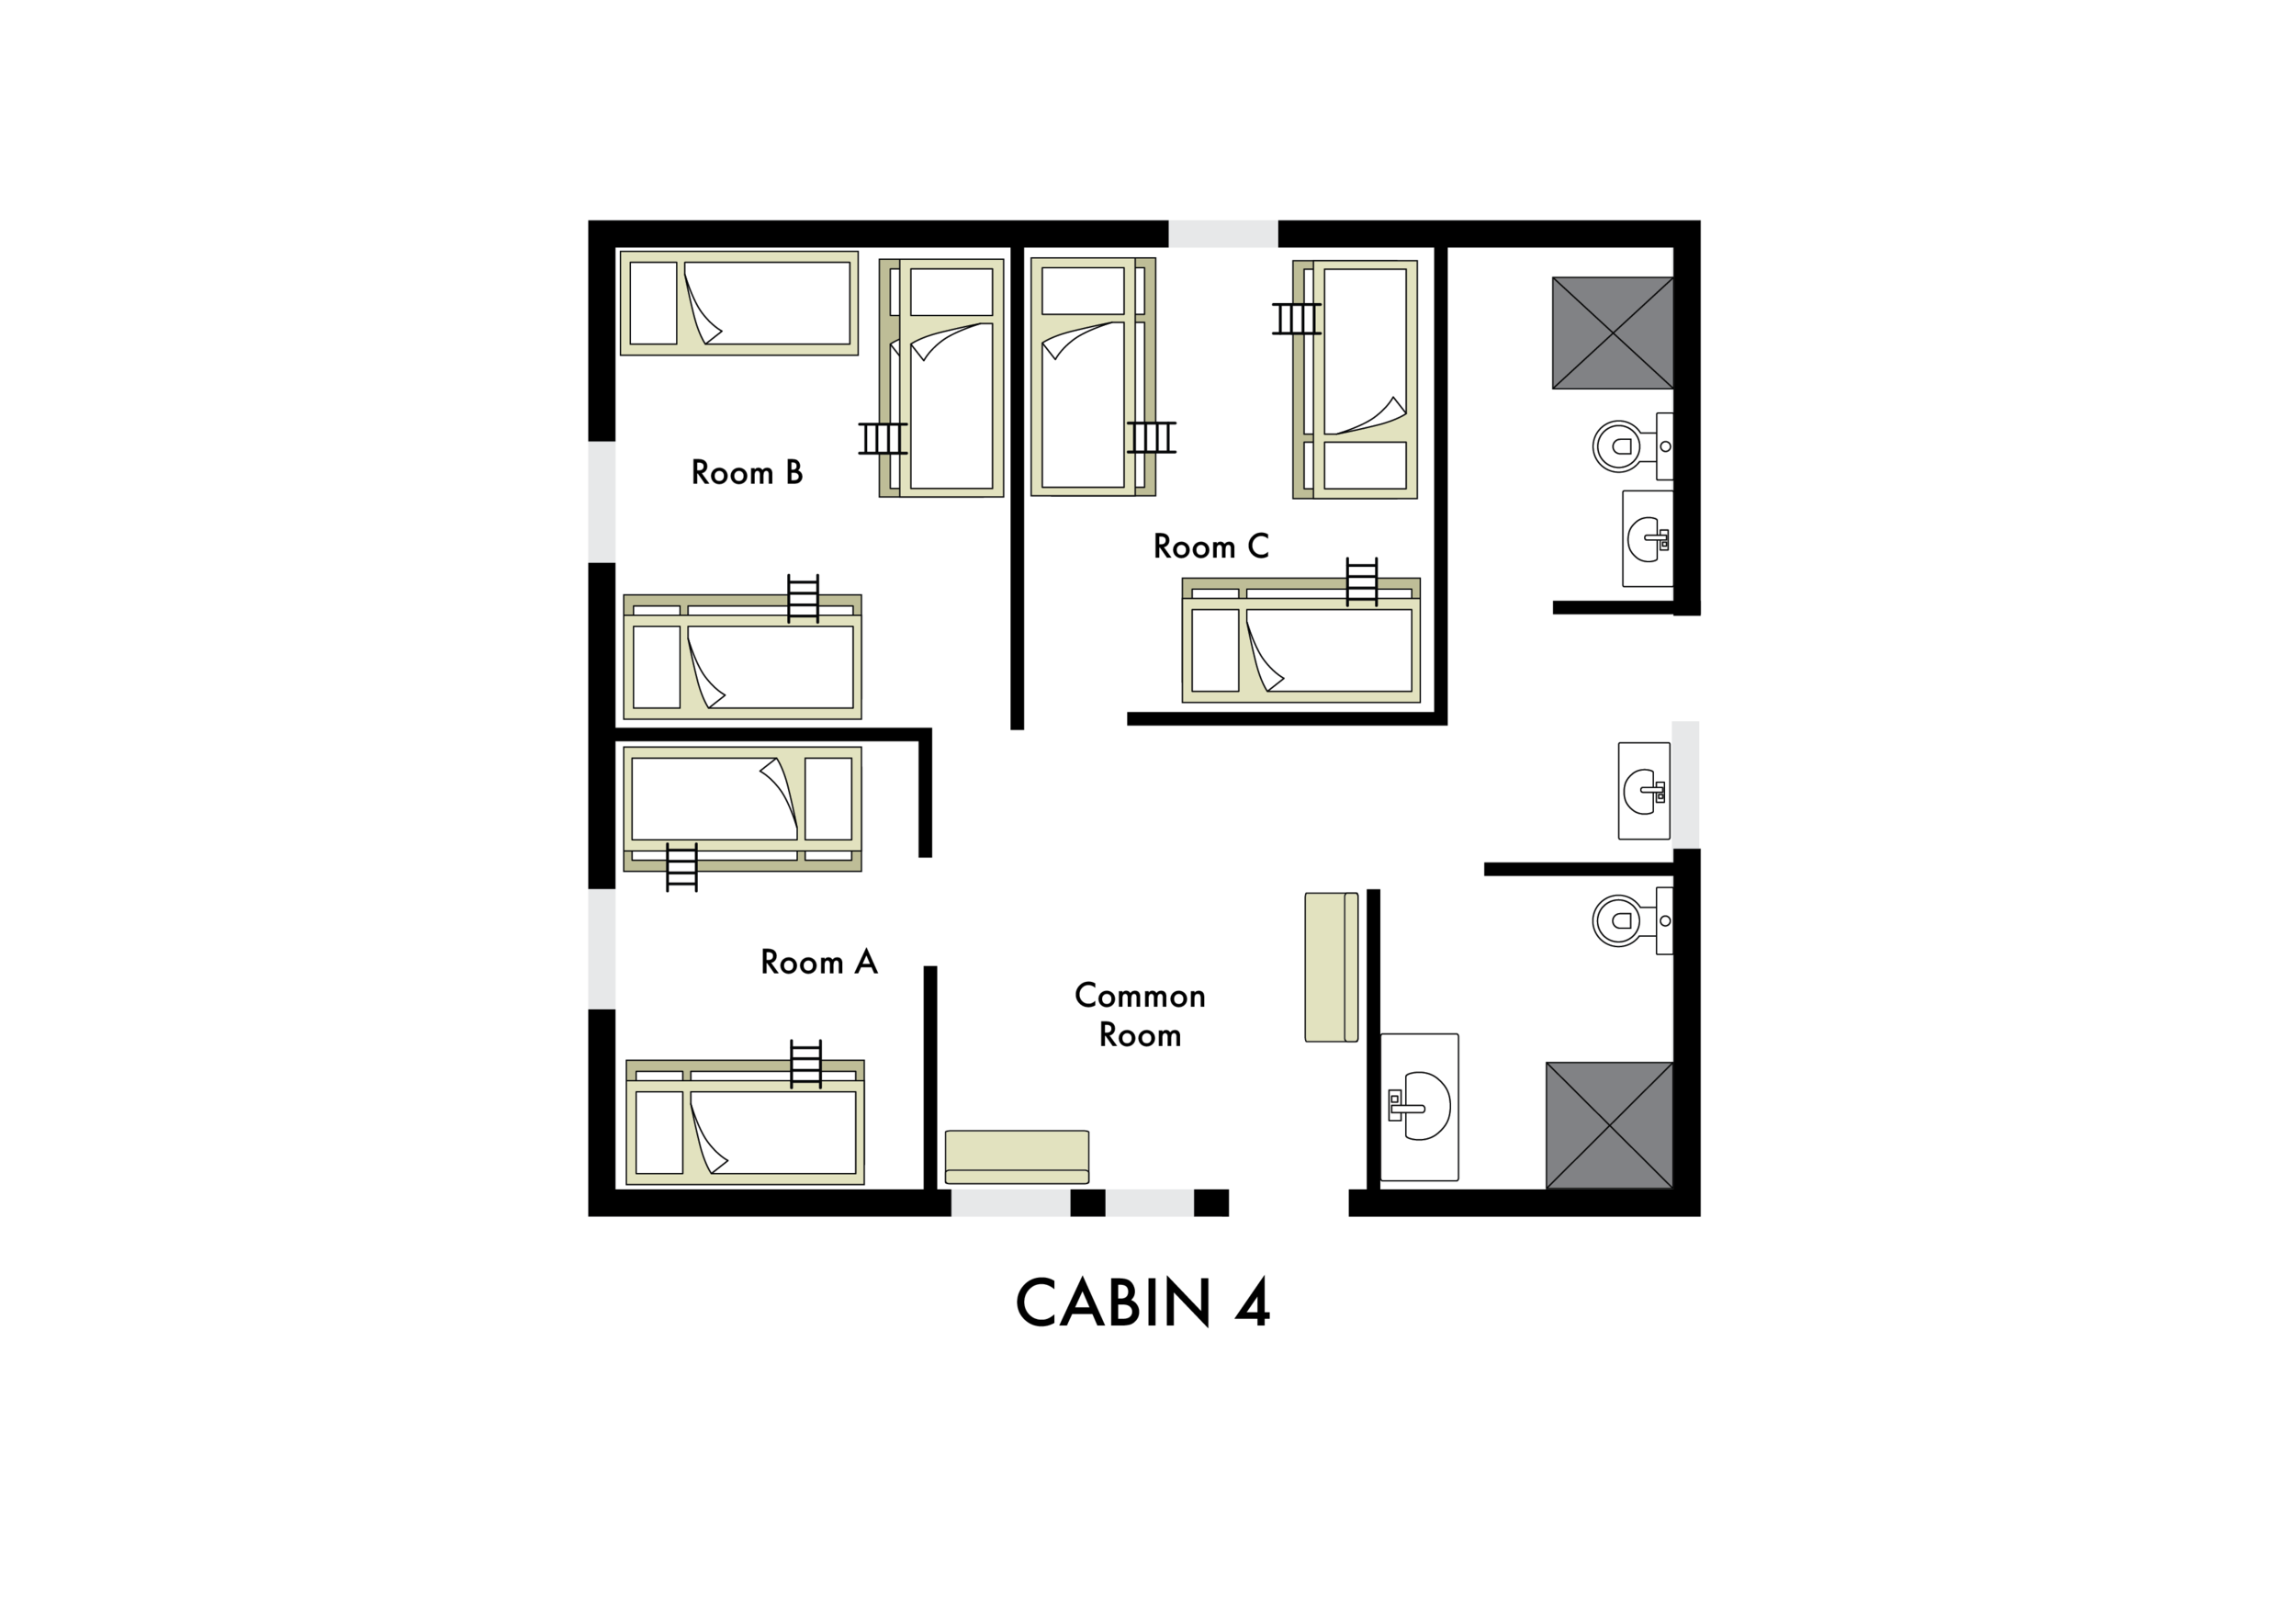 Cabin 4_02.png